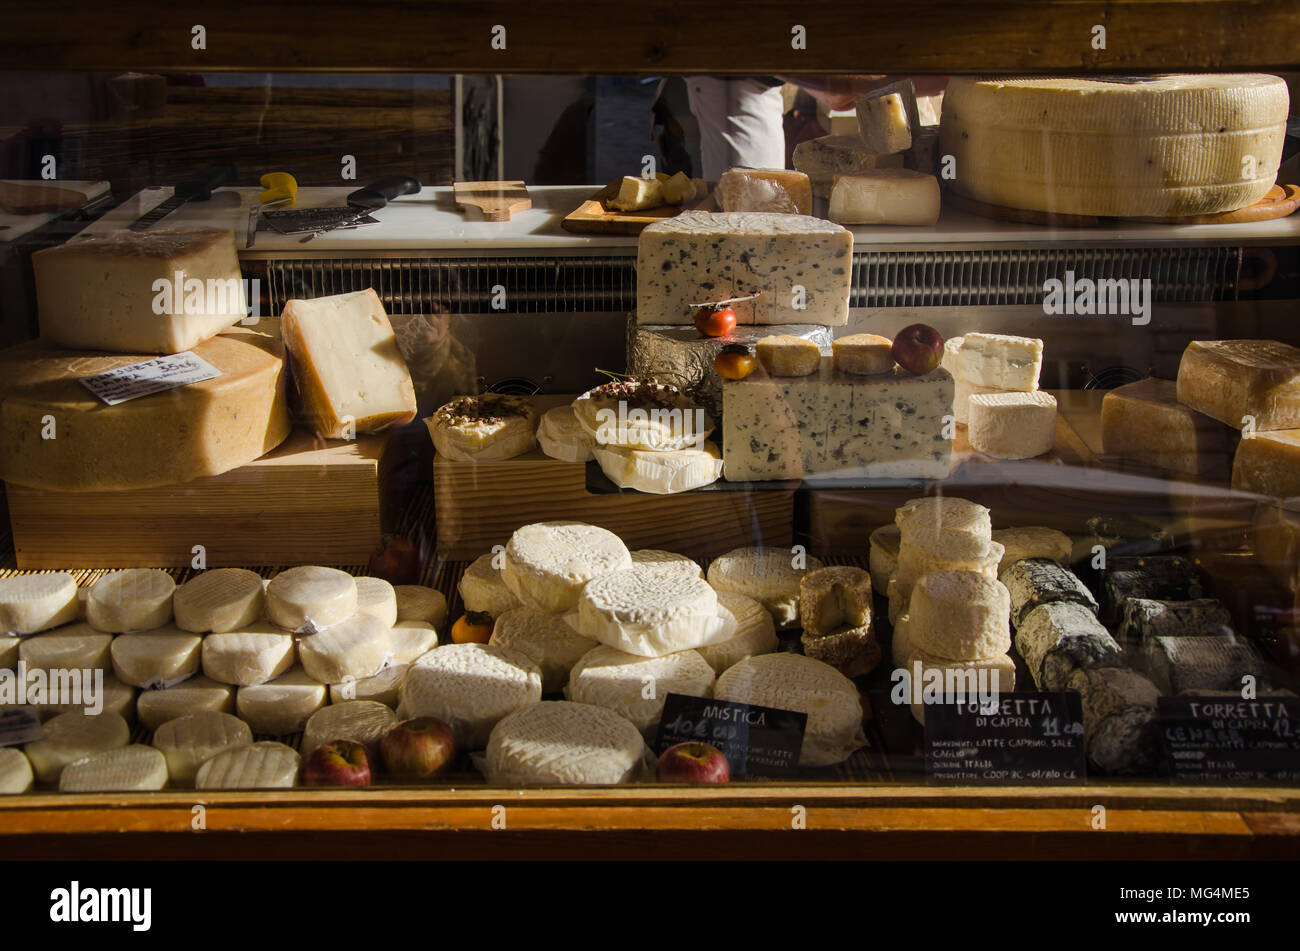 Italian cheese being sold at a food truck stall in Rome's Campo de Fiori open air market - Stock Image